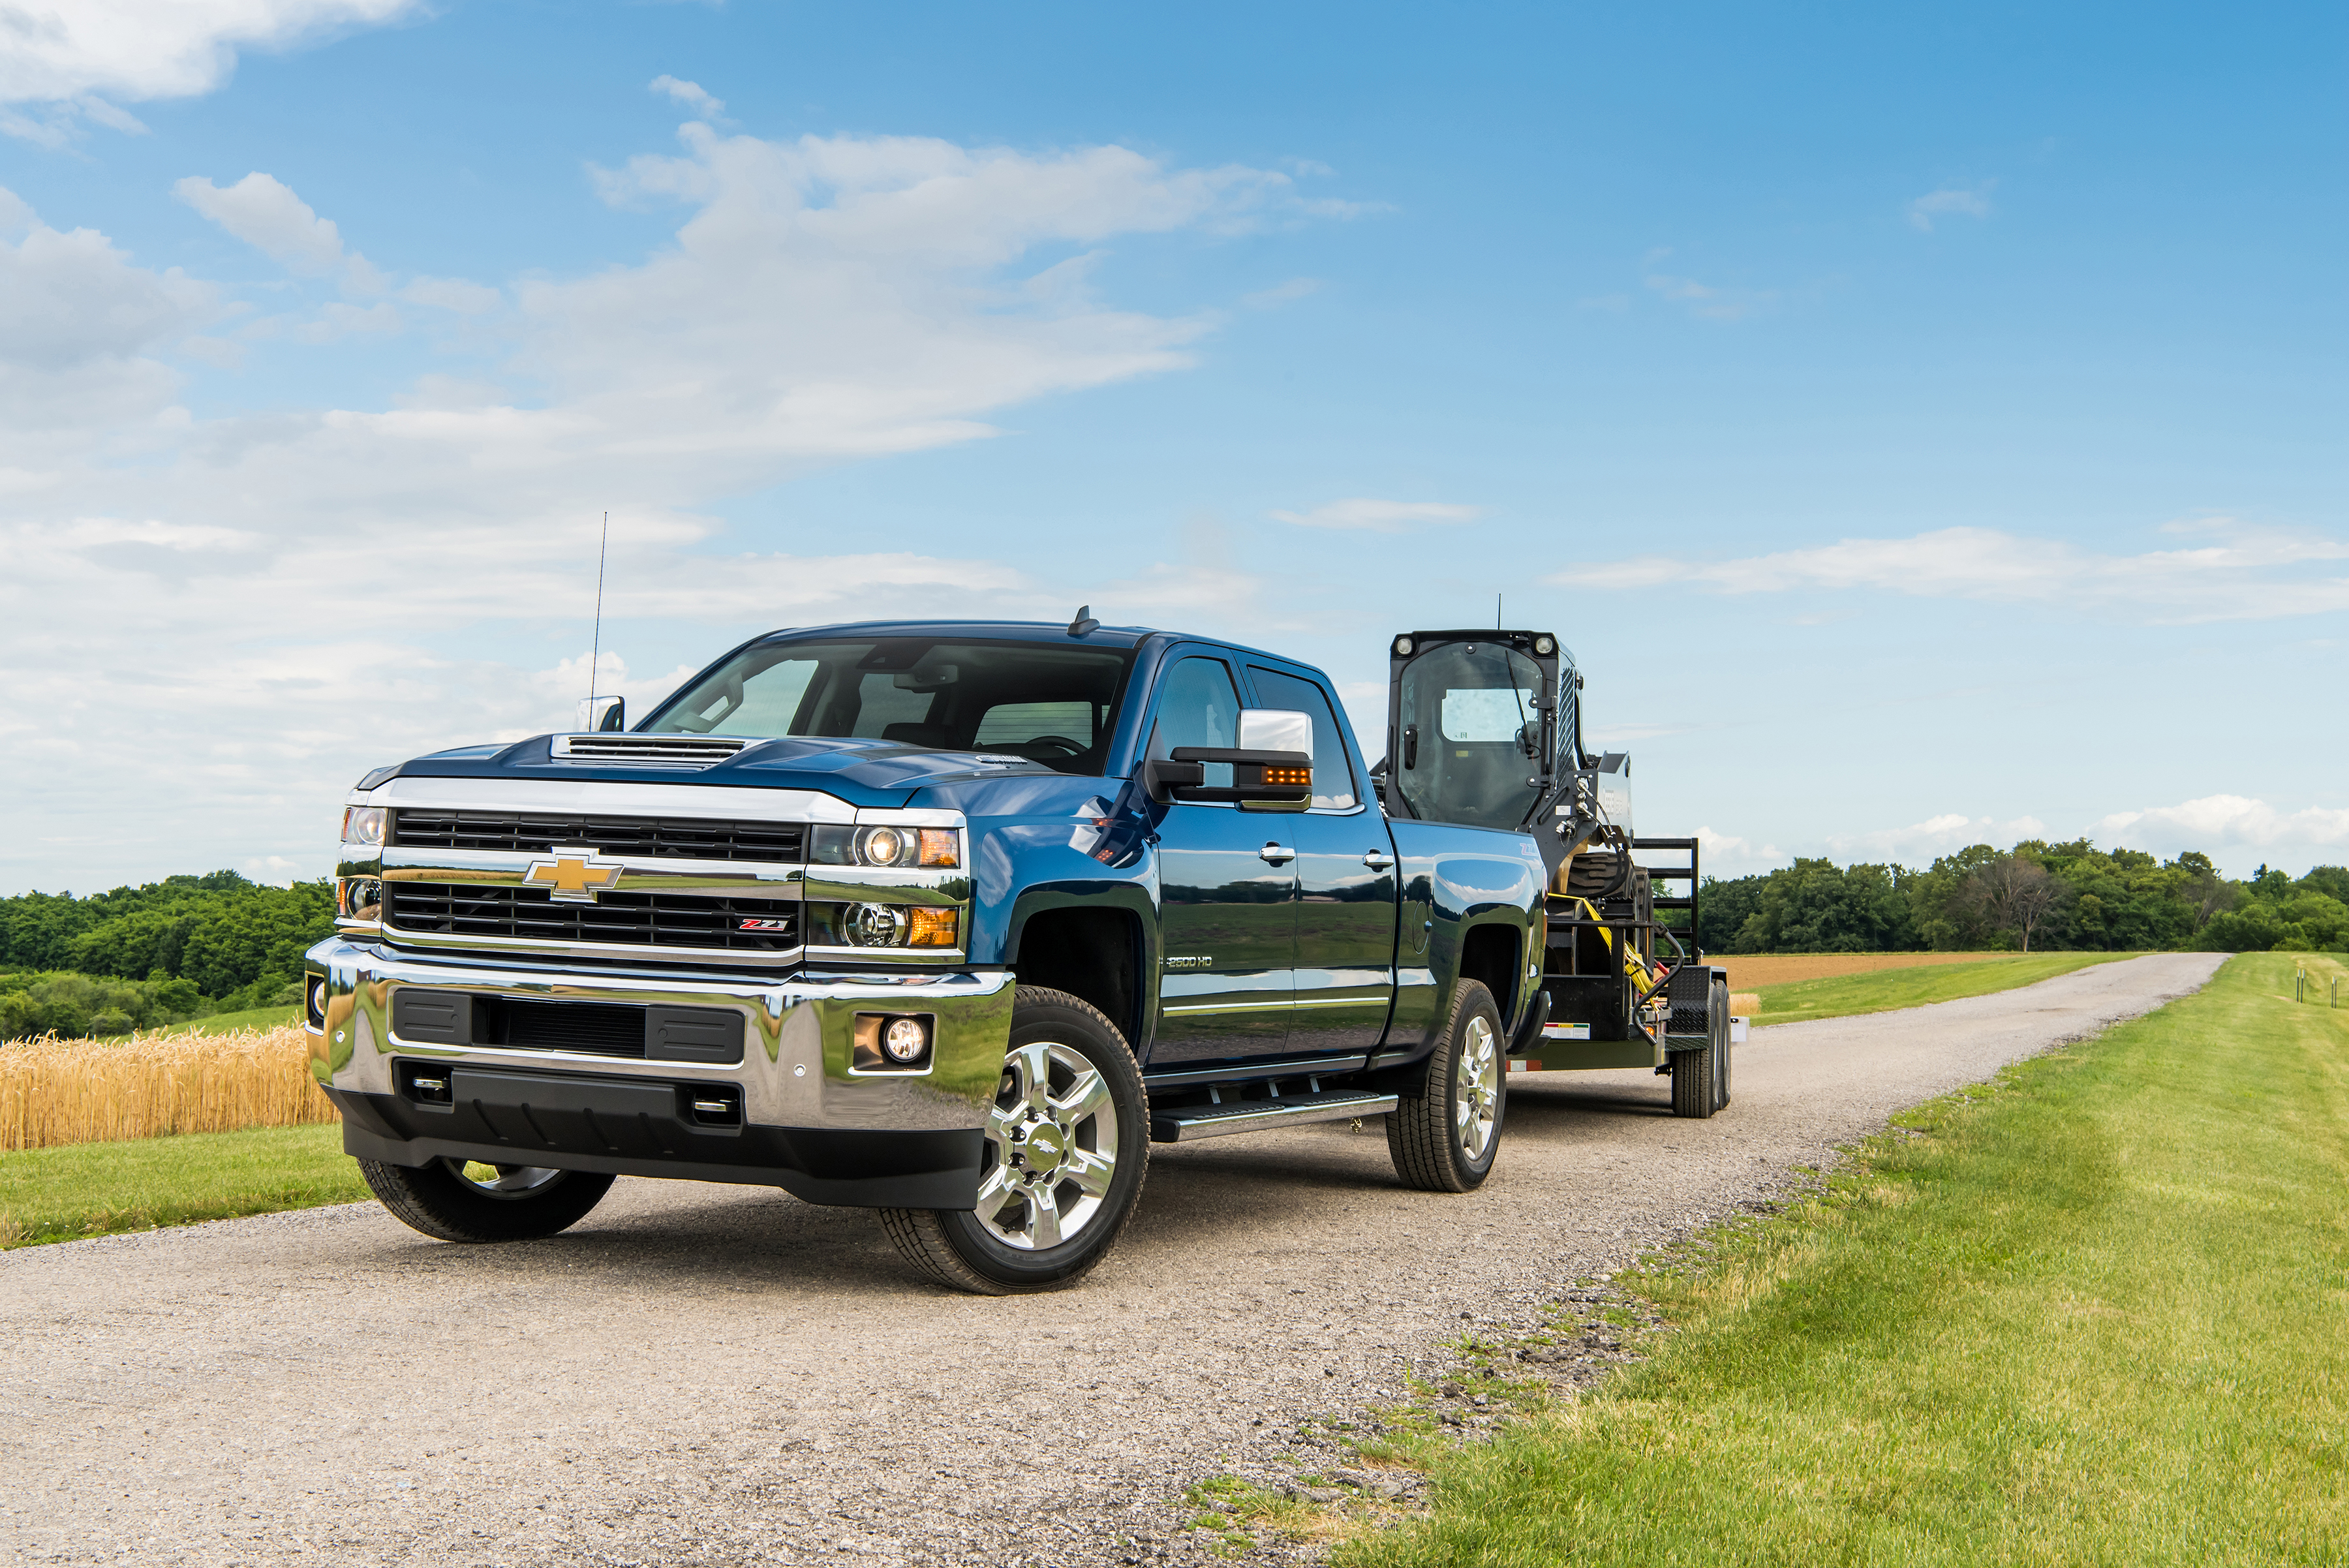 Chevrolet Trucks Place Strong In 2018 Kelley Blue Book Best Re Value Awards